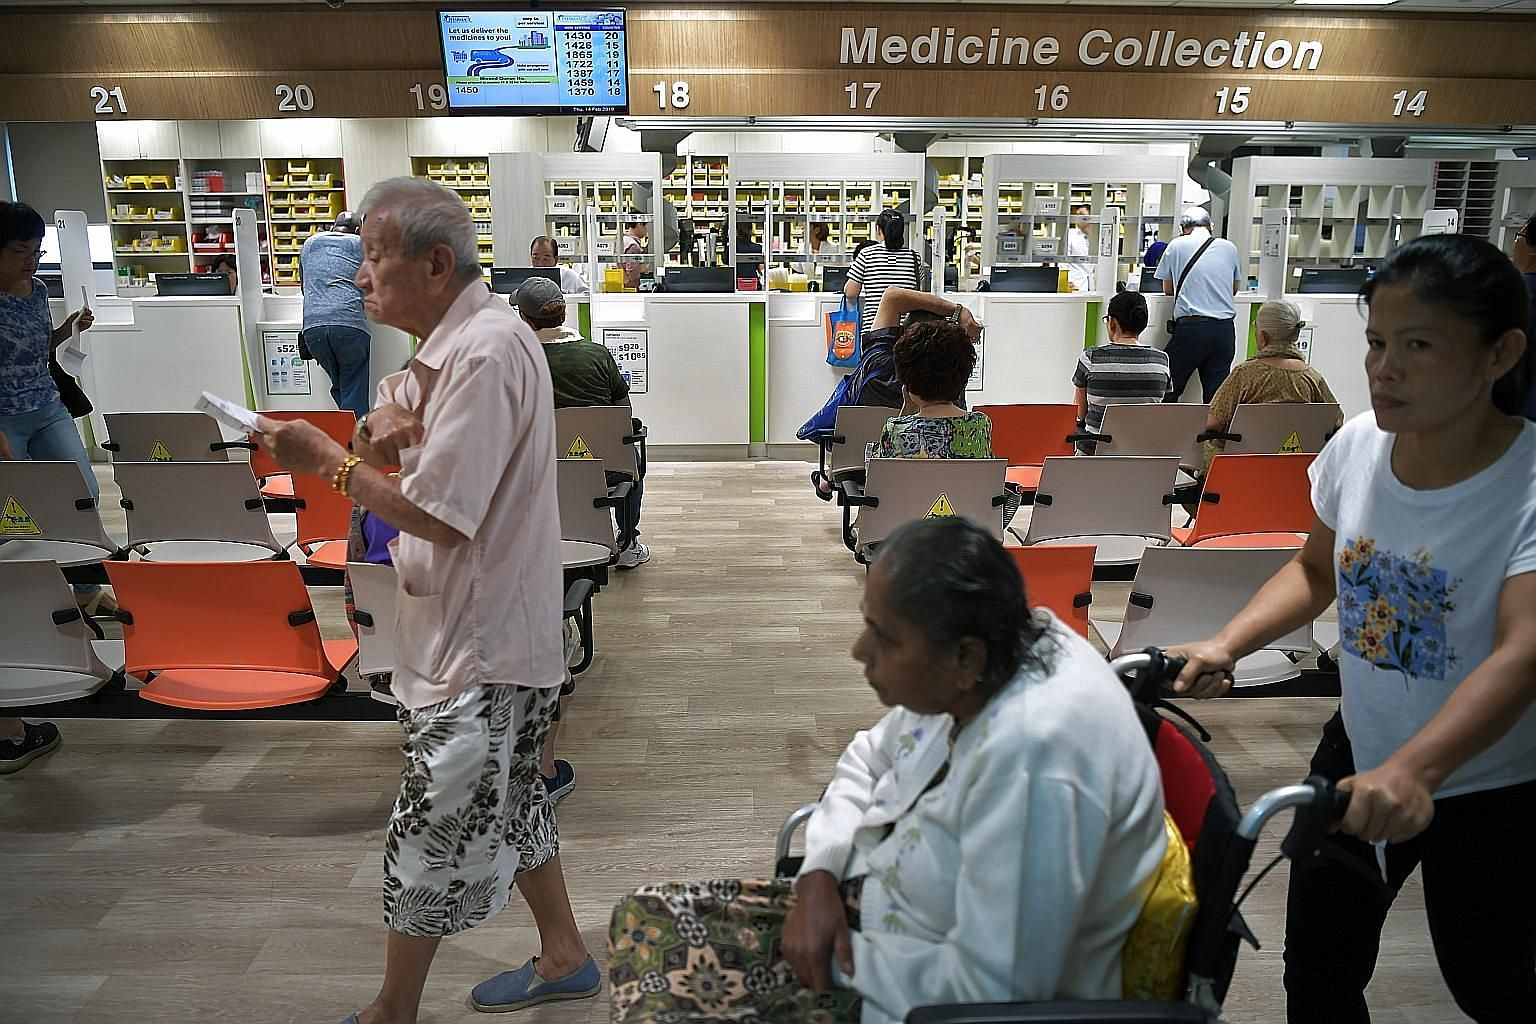 Patients at the pharmacy of Ang Mo Kio Polyclinic. Singapore's polyclinics are a marvel of efficiency, says the writer, and have been designed to process as many patients as quickly as possible.